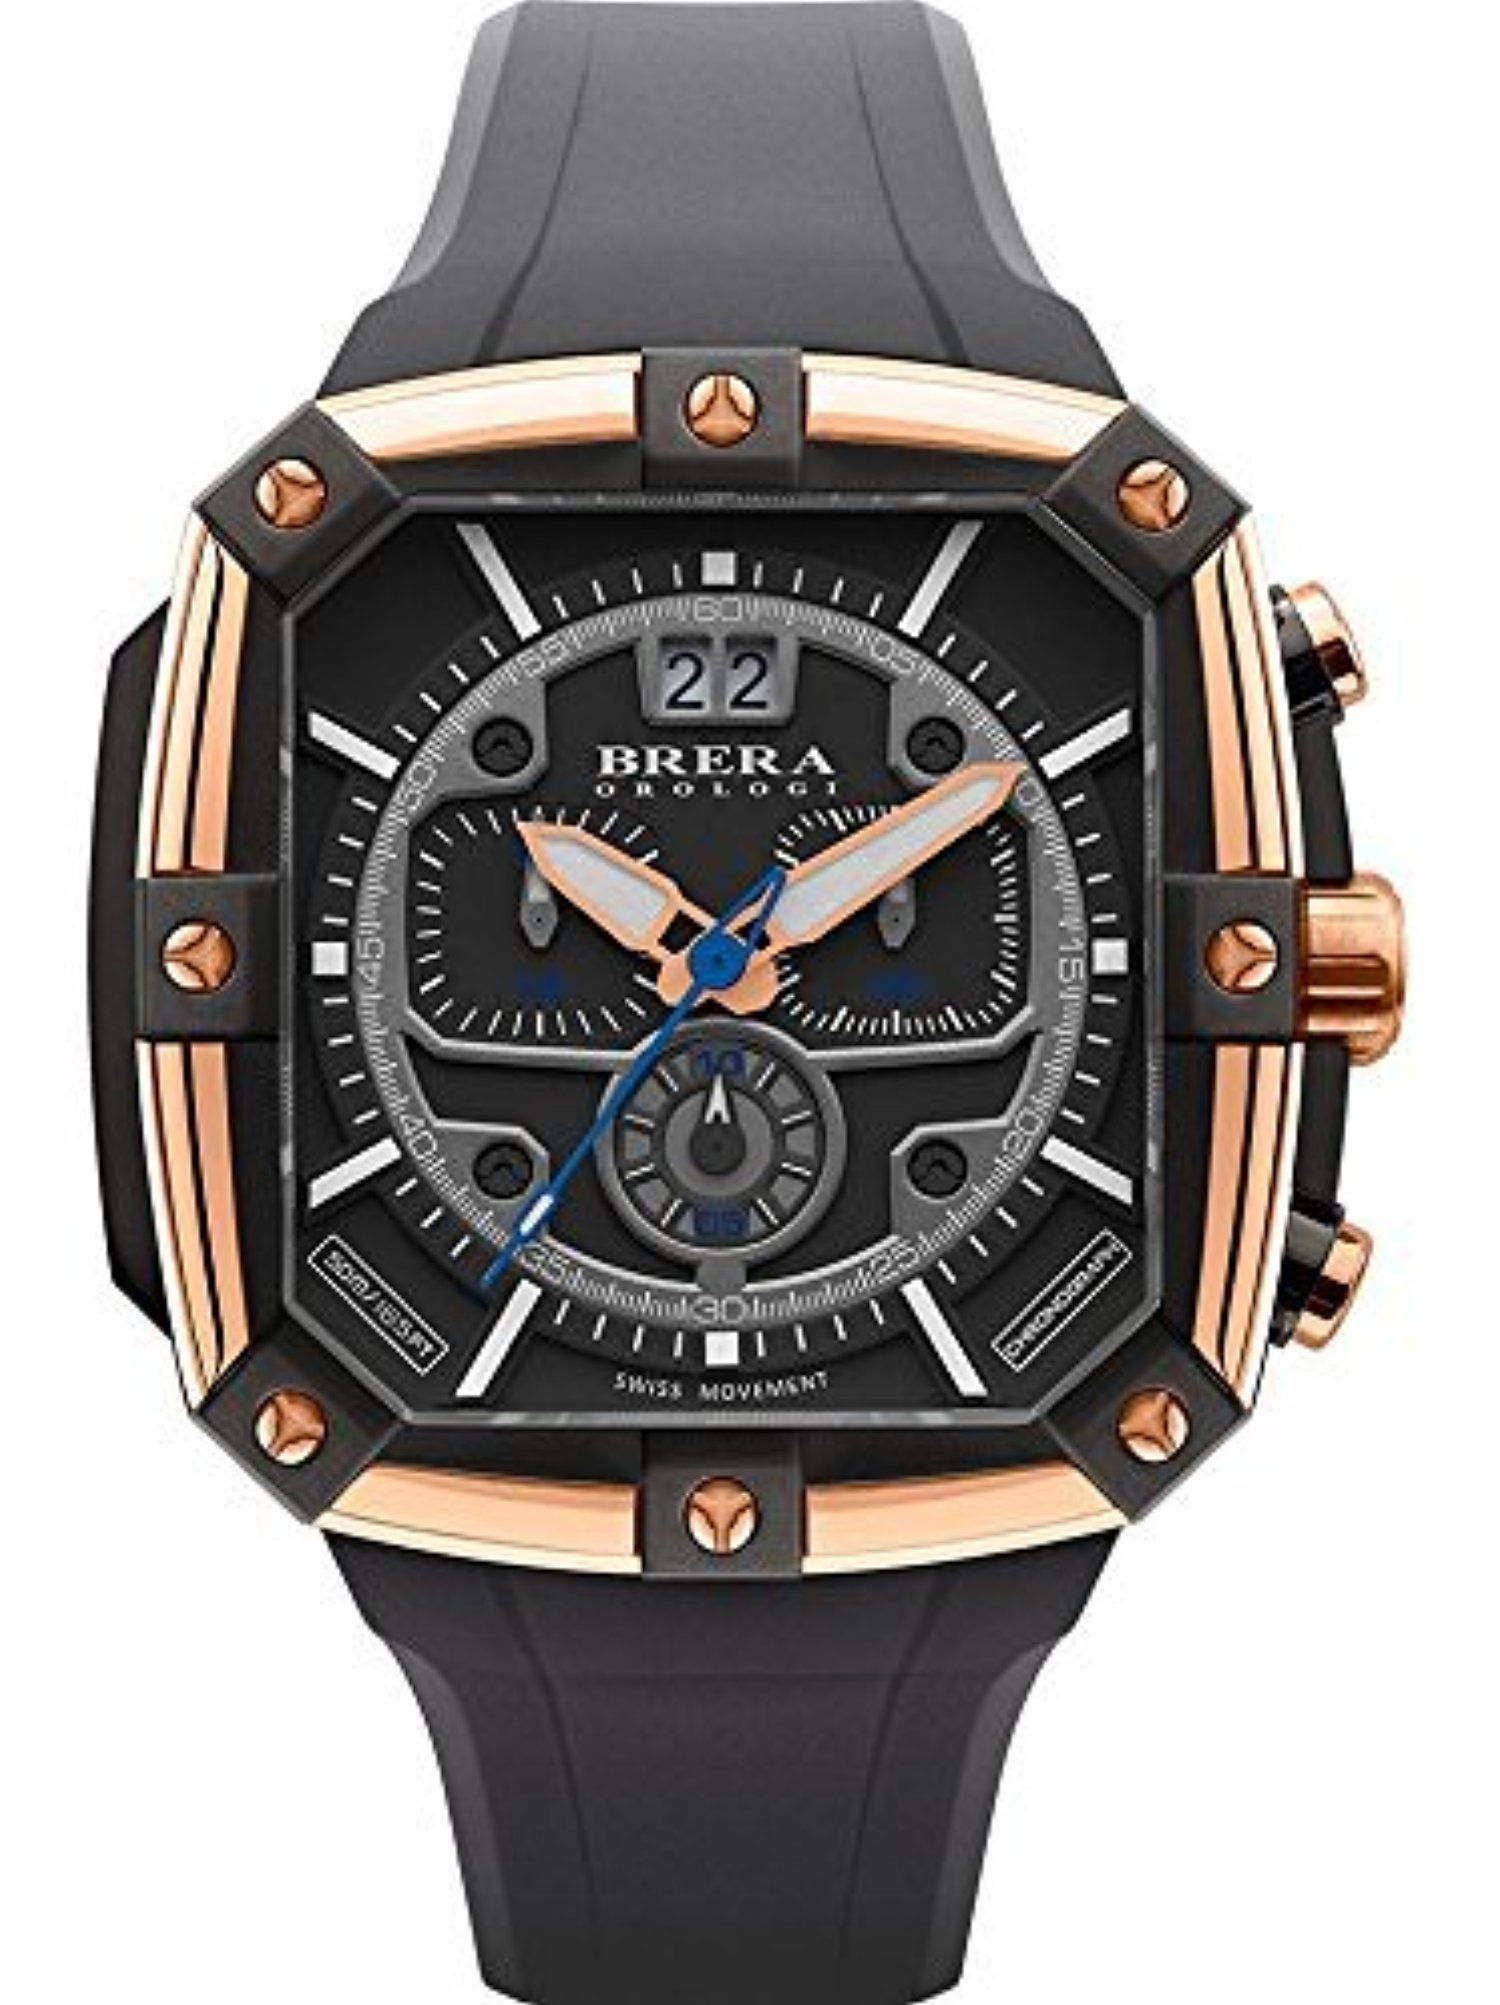 Brera Orologi - Supersportivo Square - Grey - BRSS2C4602 by Brera Orologi -- Awesome products selected by Anna Churchill